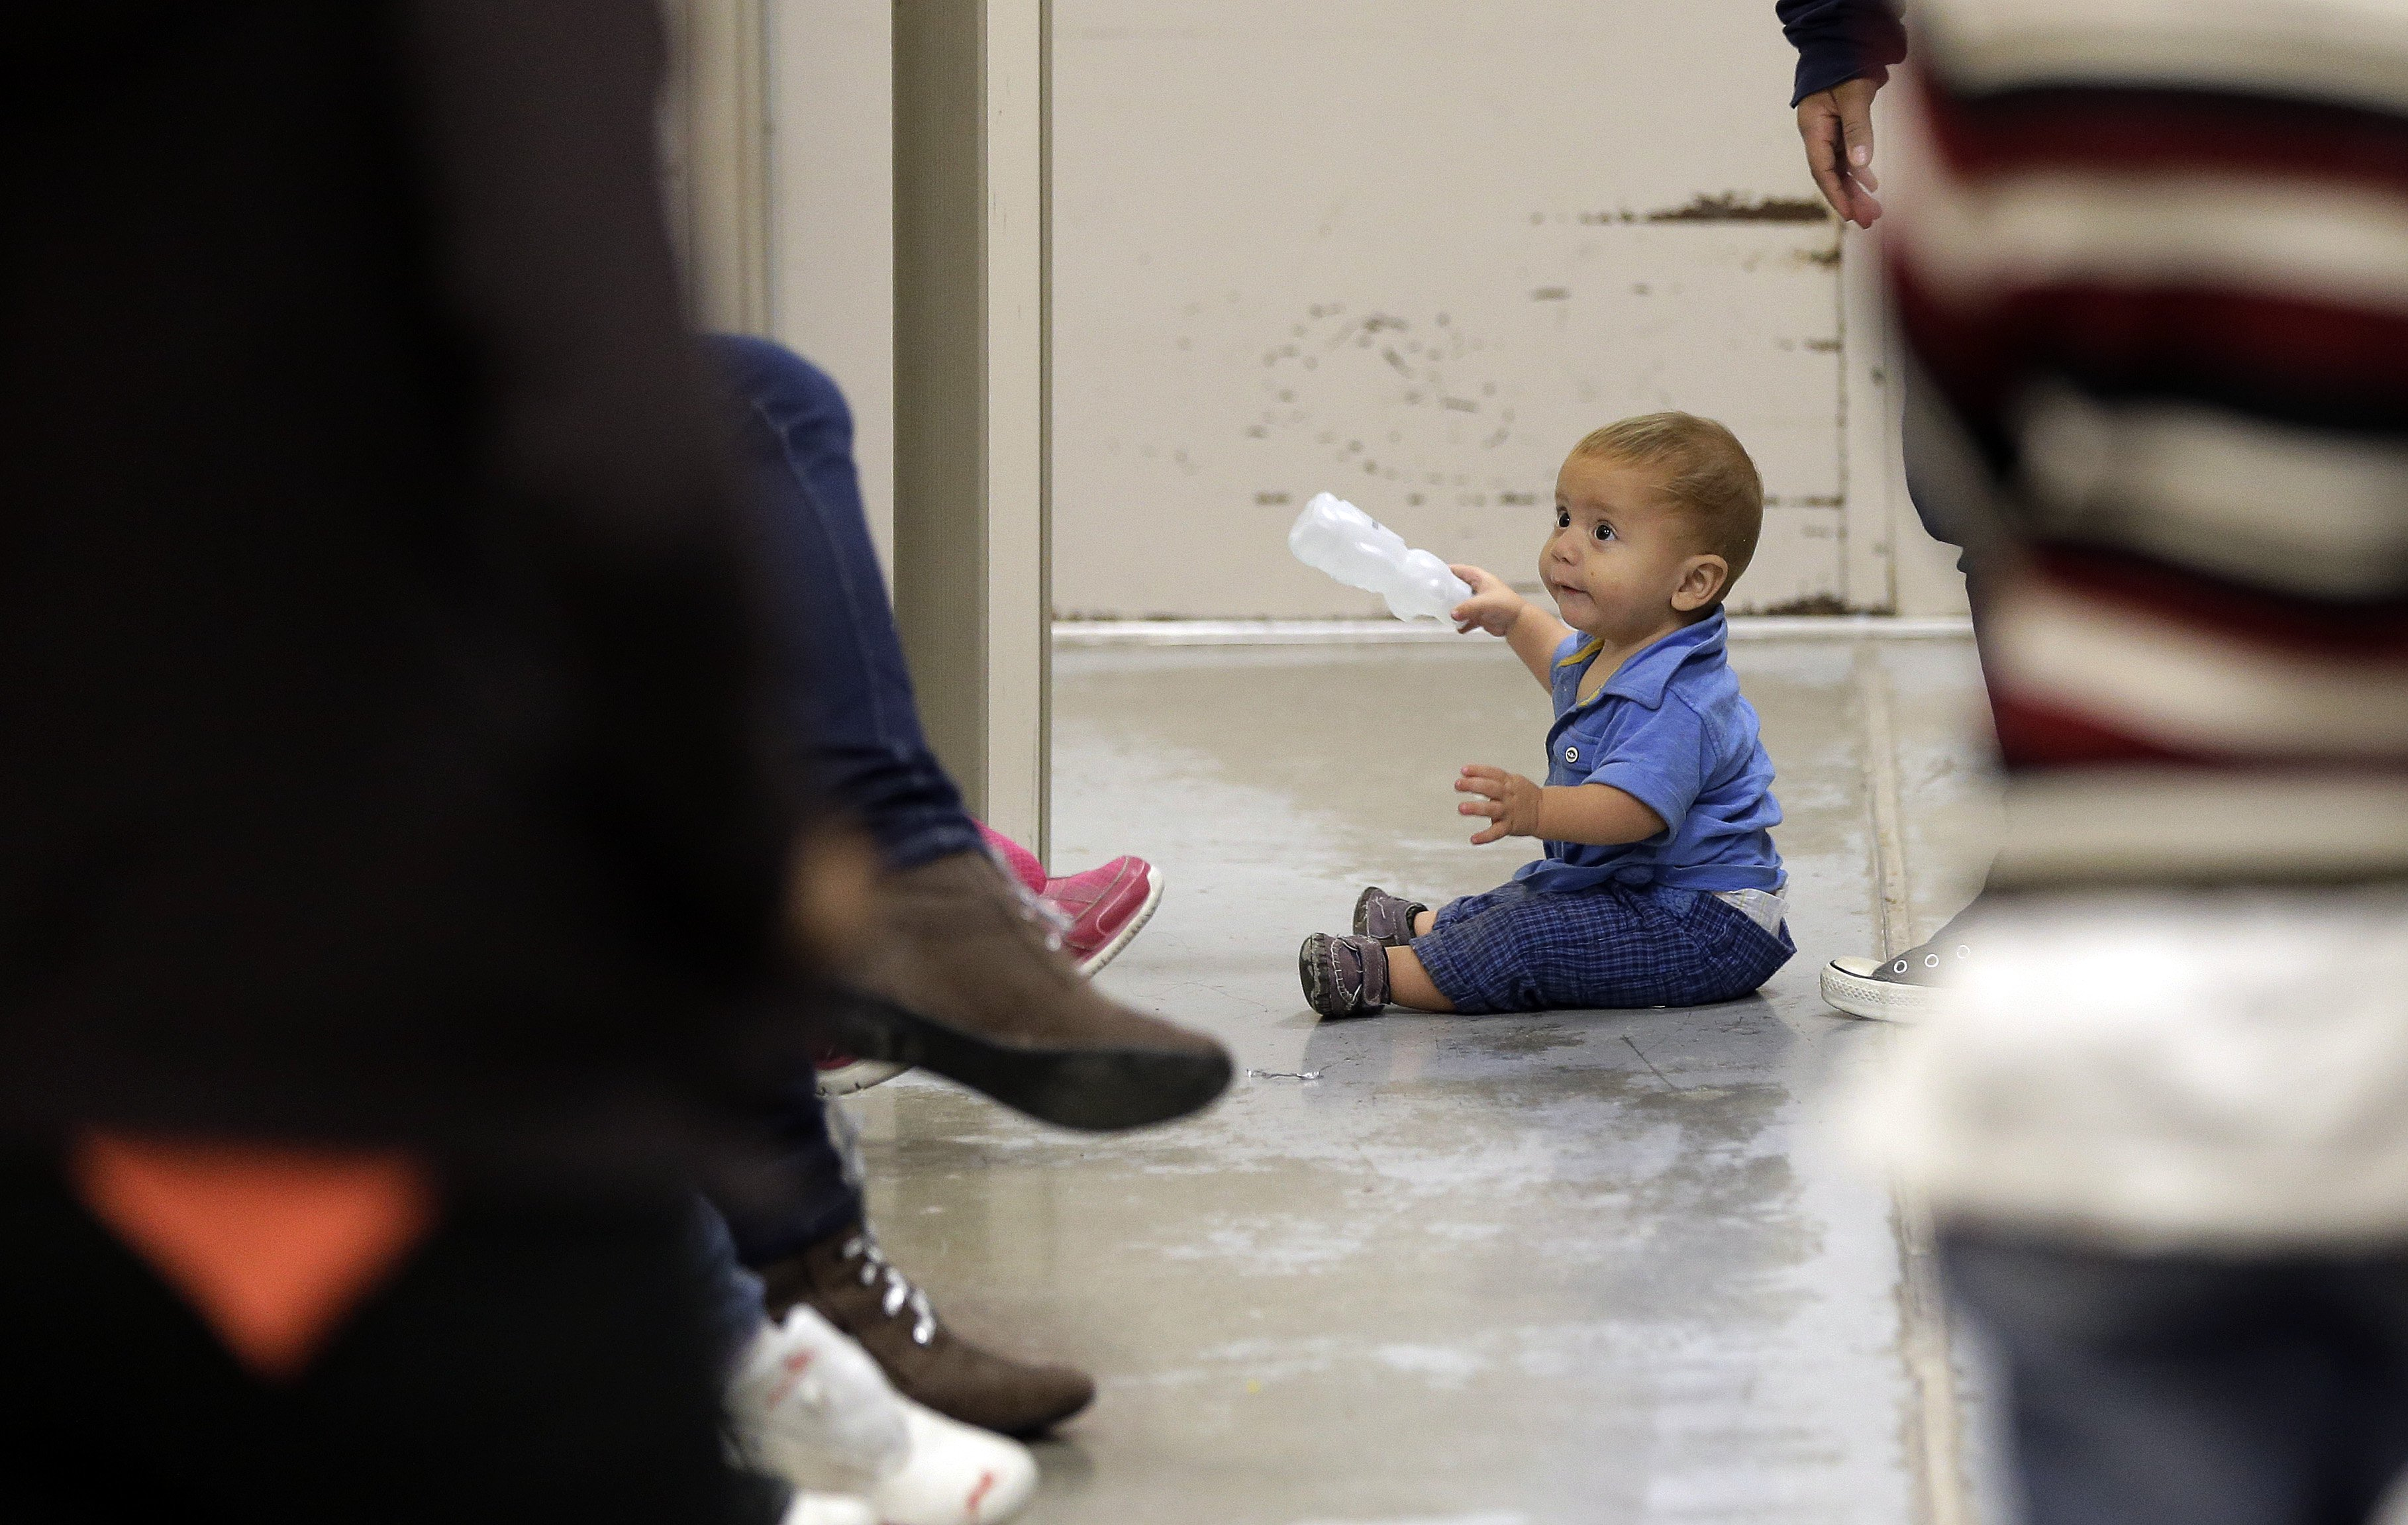 Images of children, infants in juvenile detention centers for illegal aliens taken during a media tour four years ago in Brownsville, Texas and Nogales, Arizona are a major part of the latest criticism of the national mainstream media and its coverage of President Trump. (Pool)